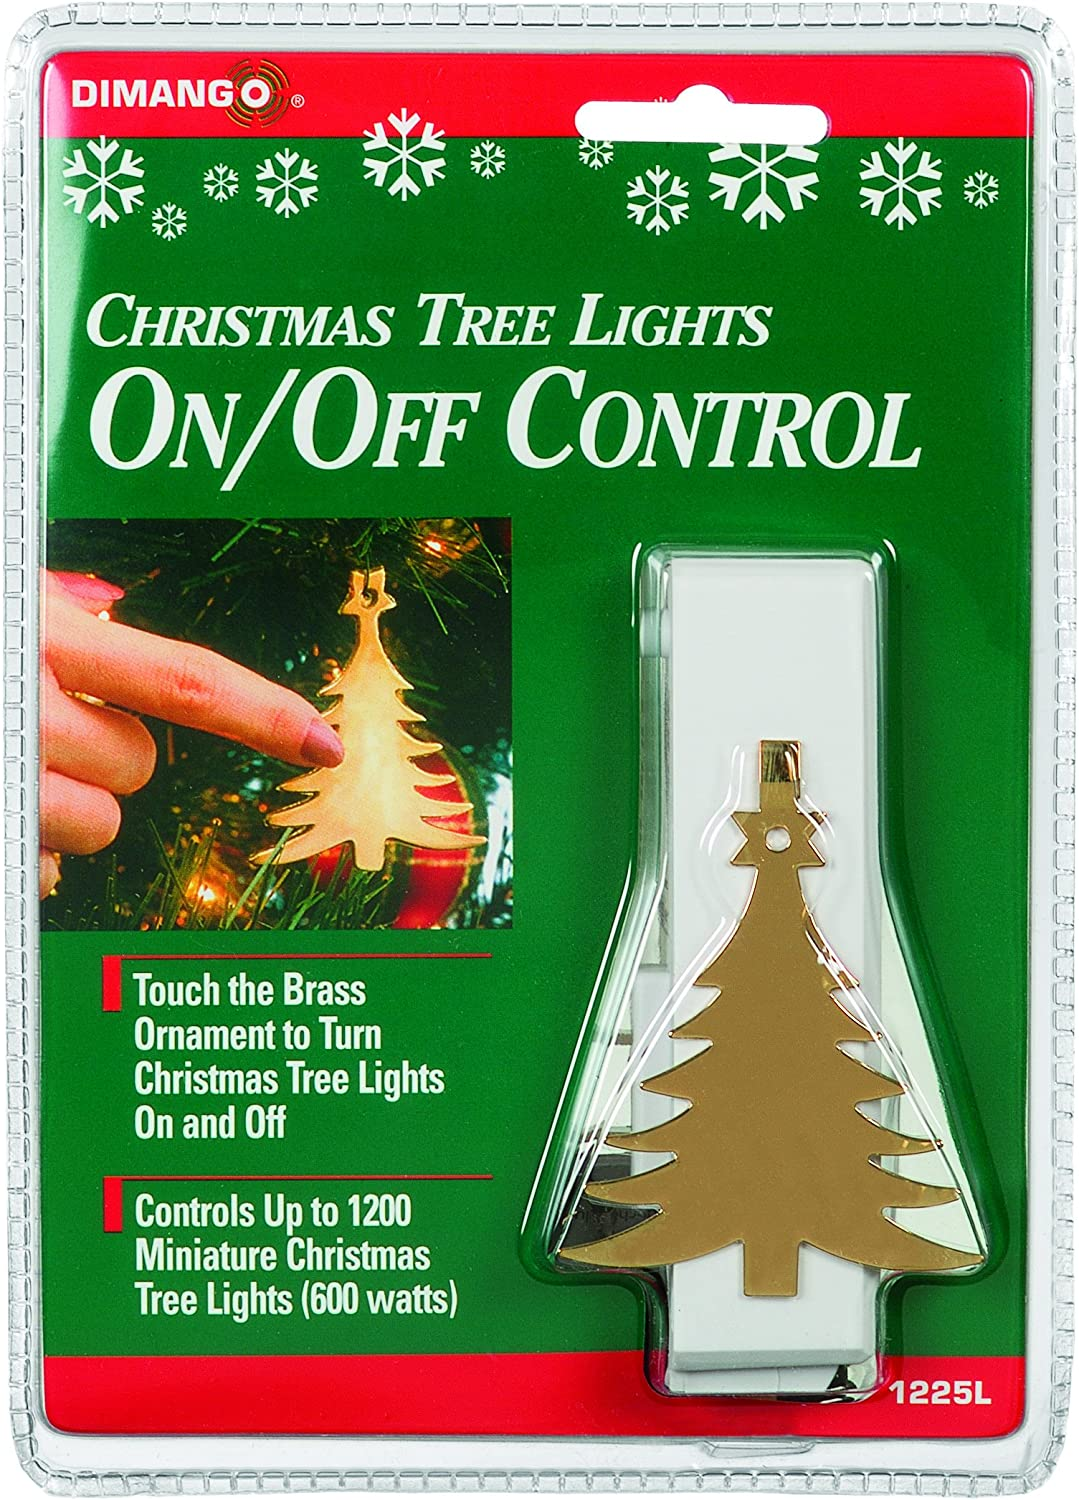 Xodus Innovations 1225LS Snowflake On//Off Touch Control Ornament for Christmas Tree Lights Carlon White Thomas and Betts